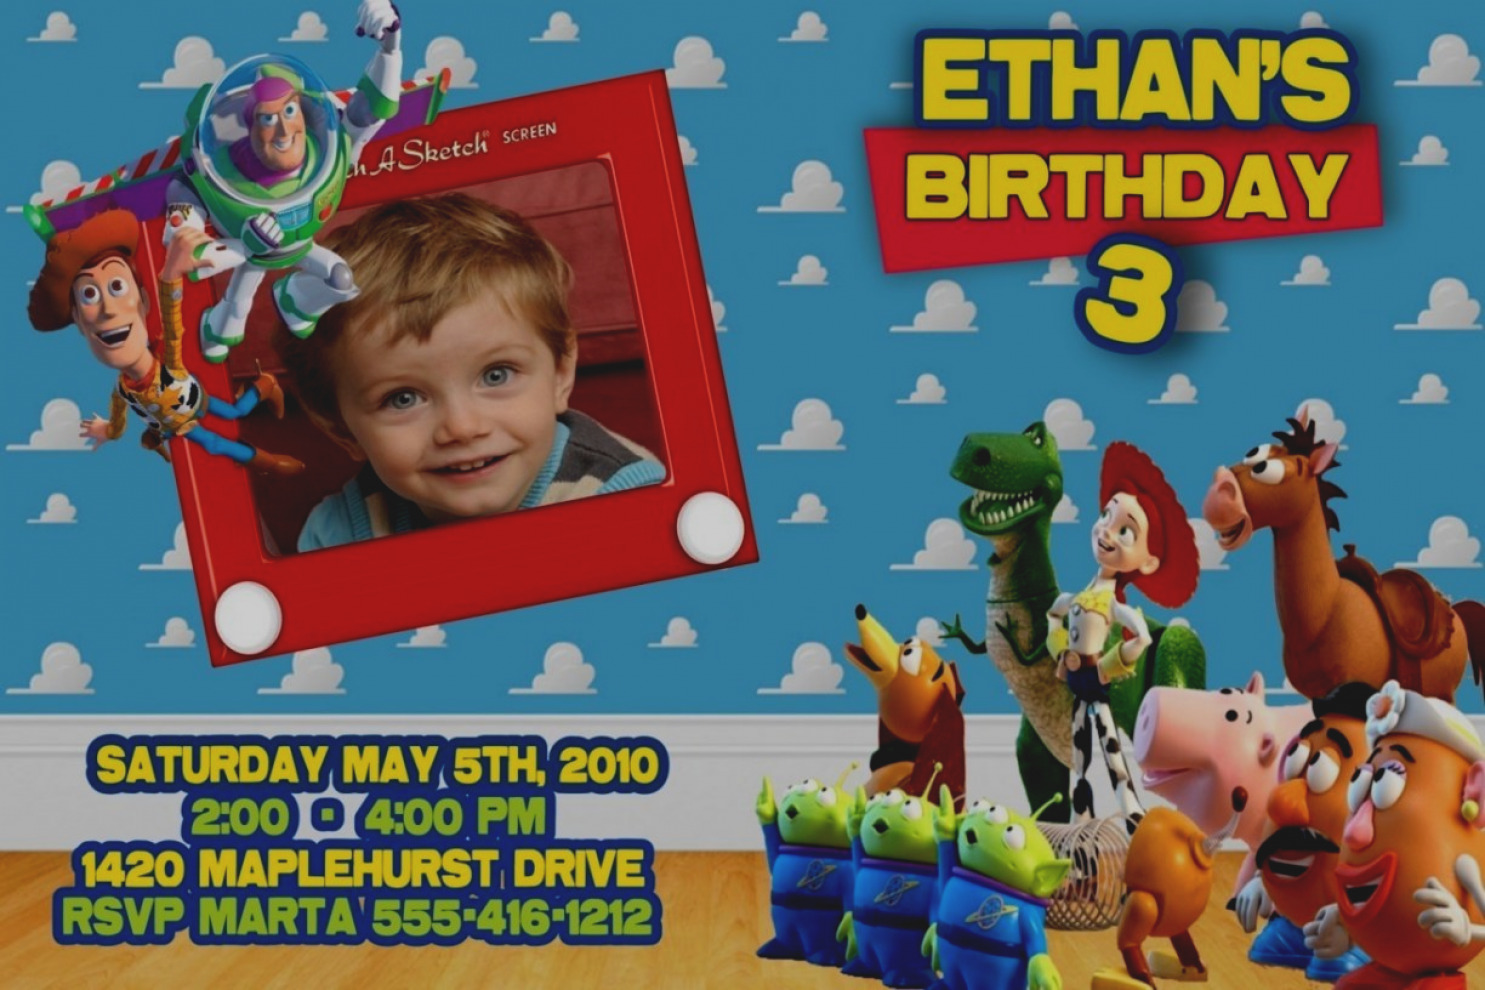 toy story birthday party invitation wording ; elegant-toy-story-birthday-invitations-personalized-party-ideas